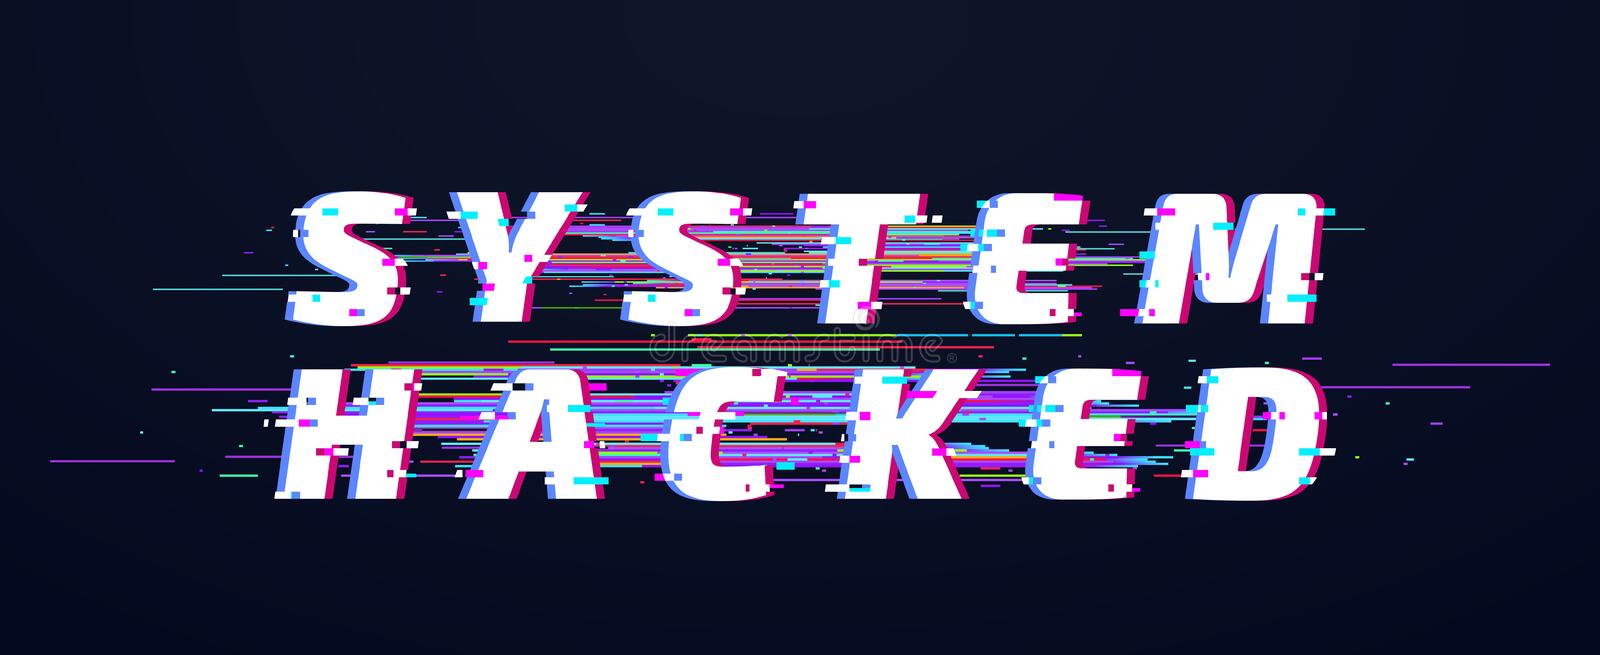 Glitch font. System hacked alphabet or digital text vector illustration background royalty free illustration